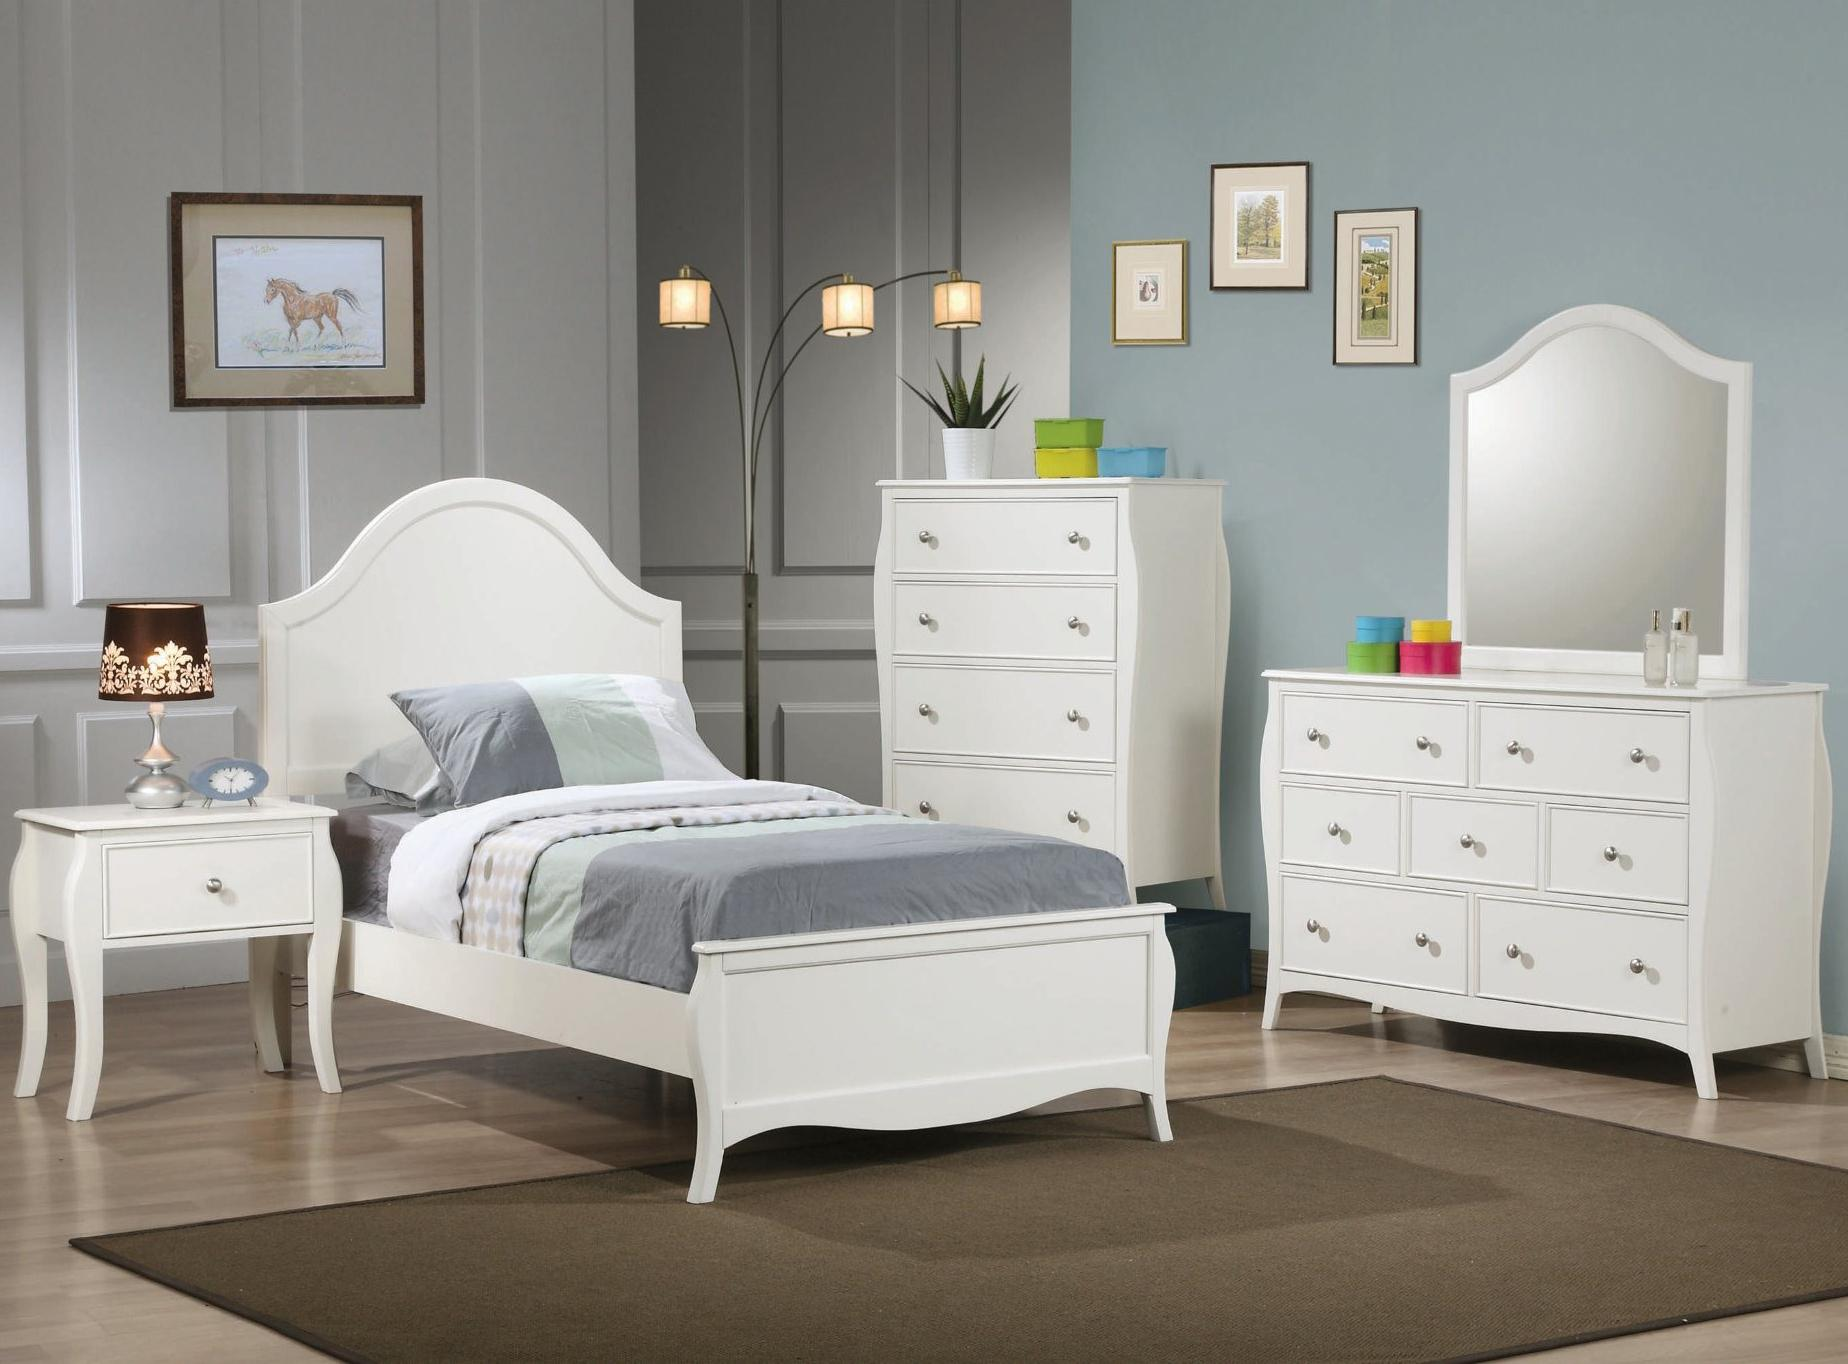 Coaster Furniture Dominique Bedroom Set